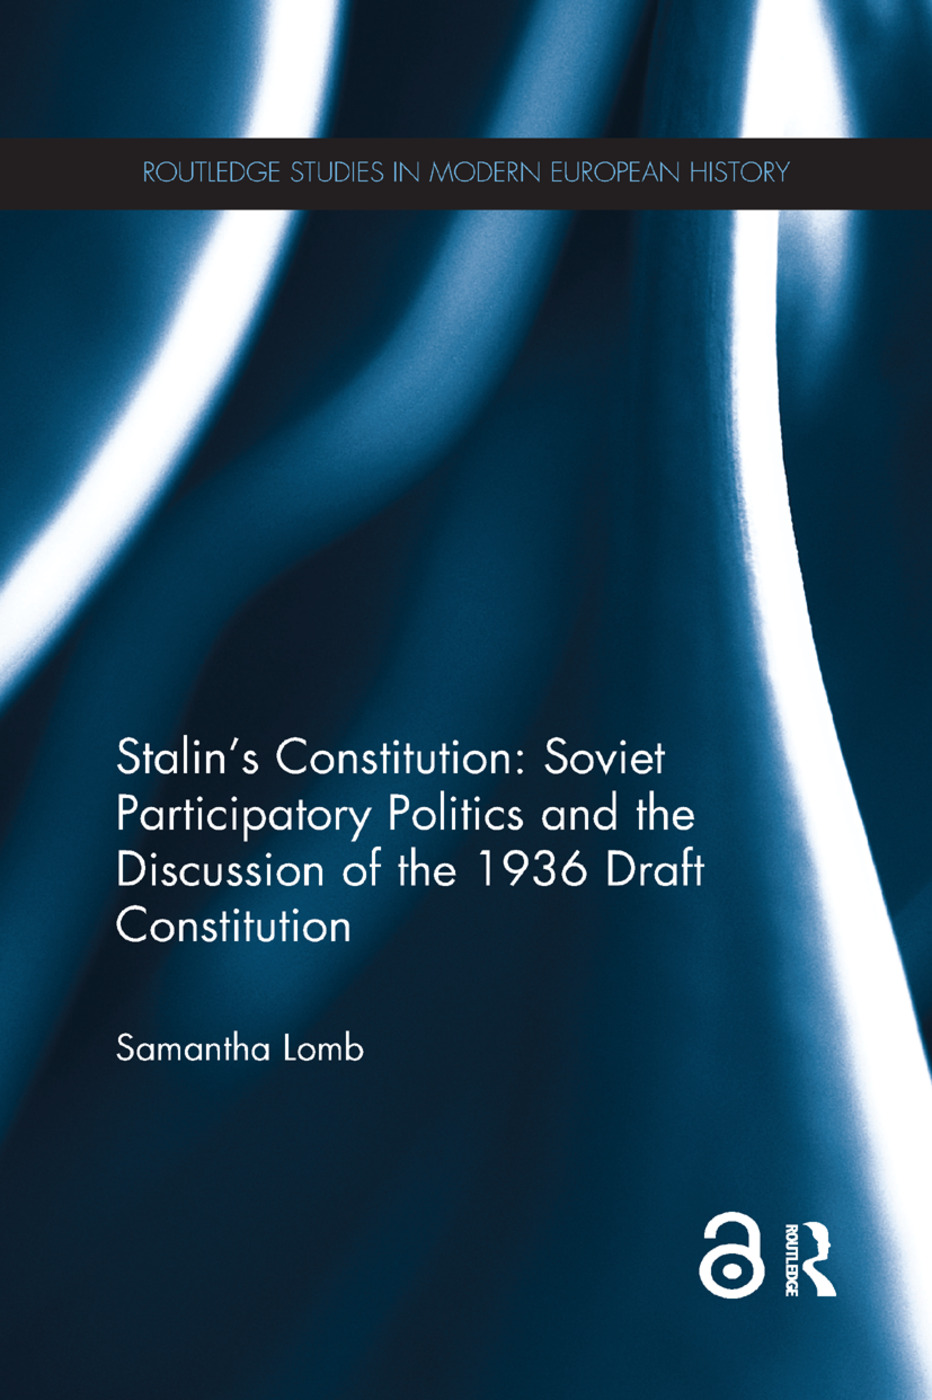 Stalin's Constitution (Open Access): Soviet Participatory Politics and the Discussion of the 1936 Draft Constitution book cover